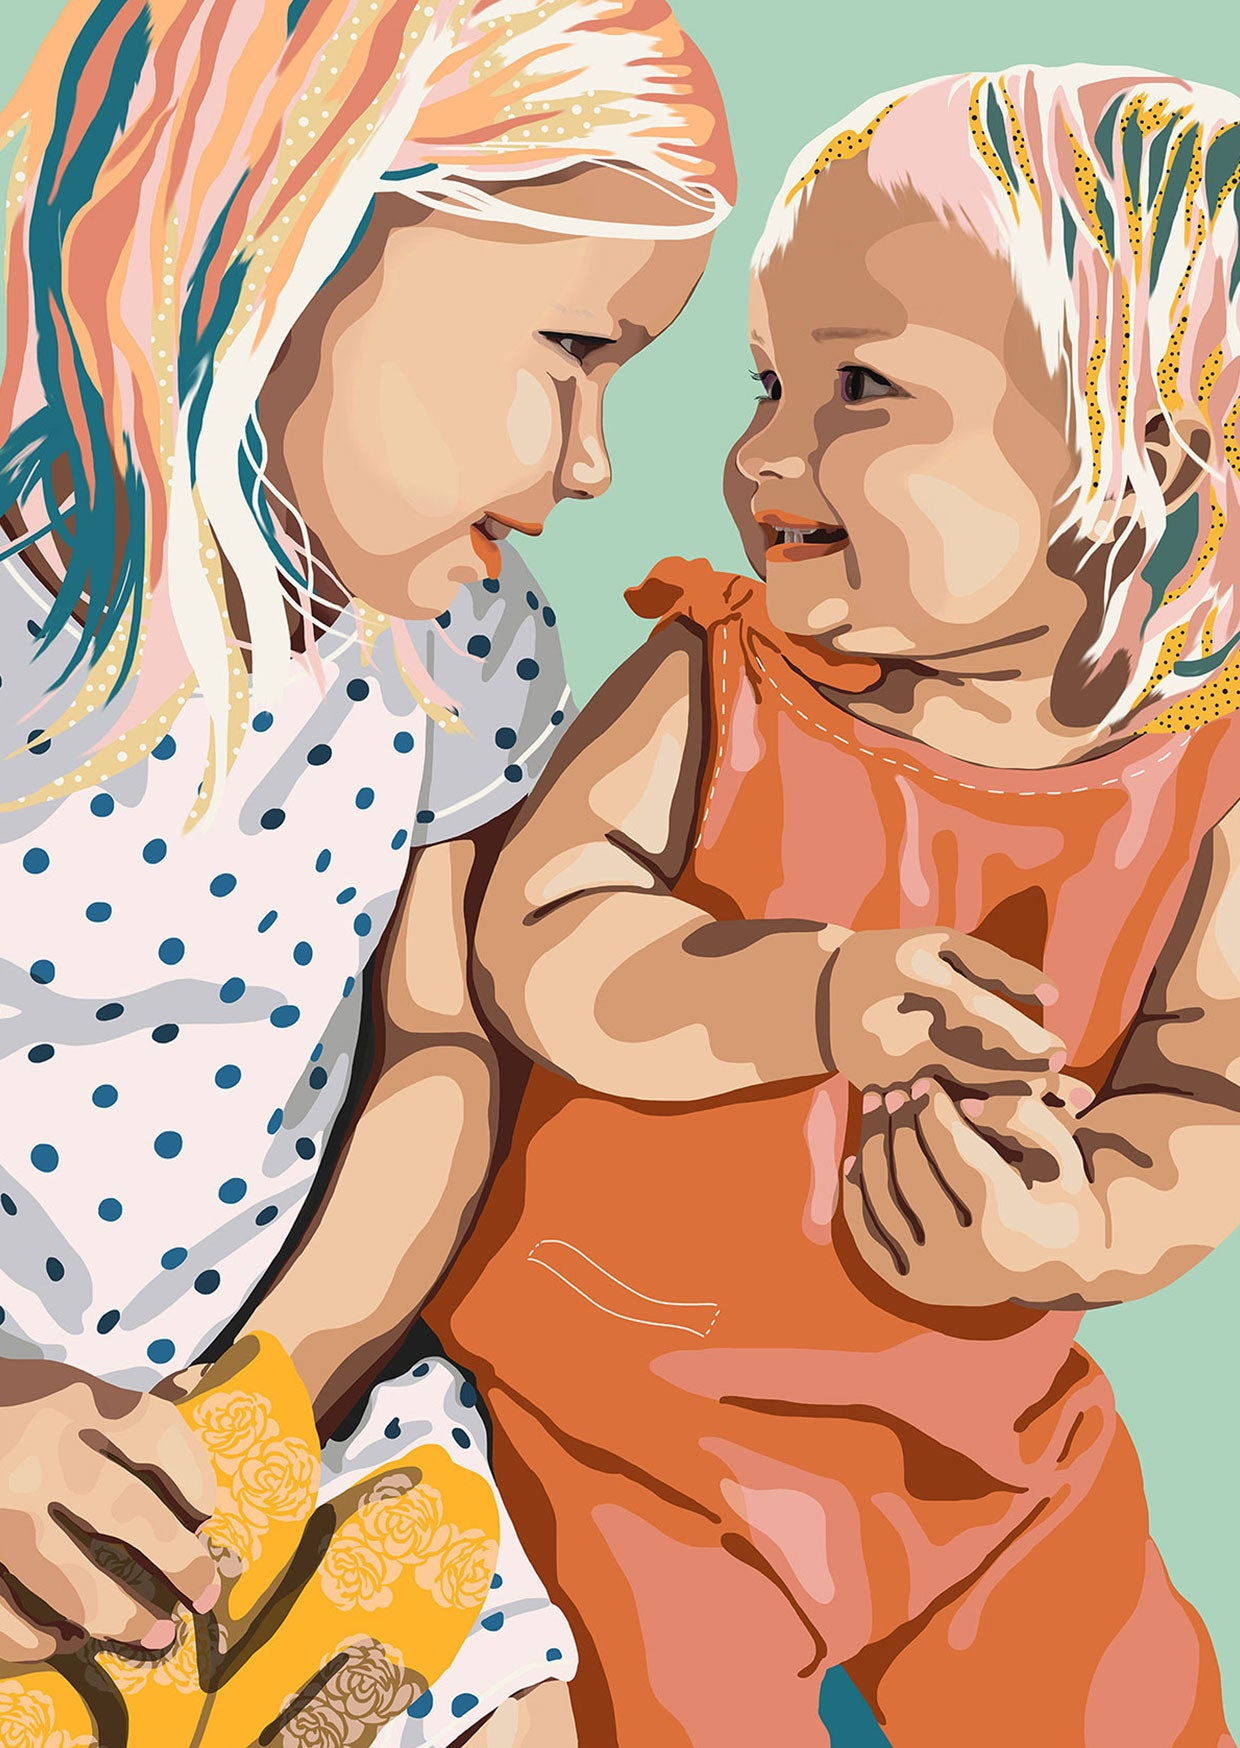 Digital portrait illustration of two young sisters